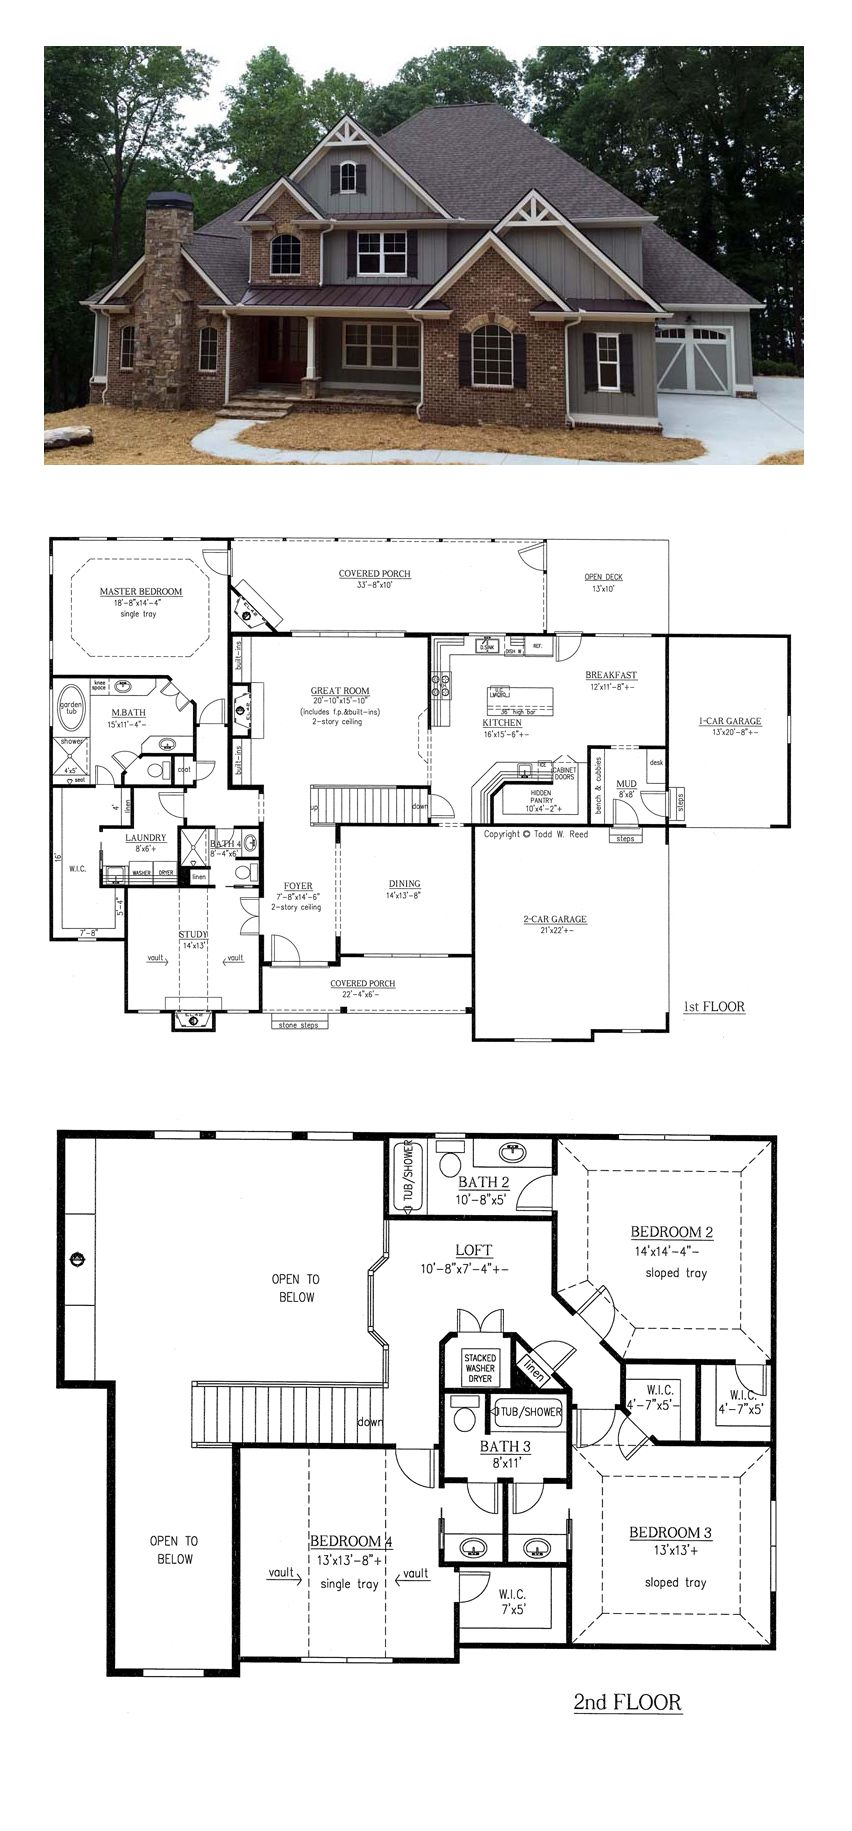 French country house plan 50263 total living area 3290 for Country house floor plans